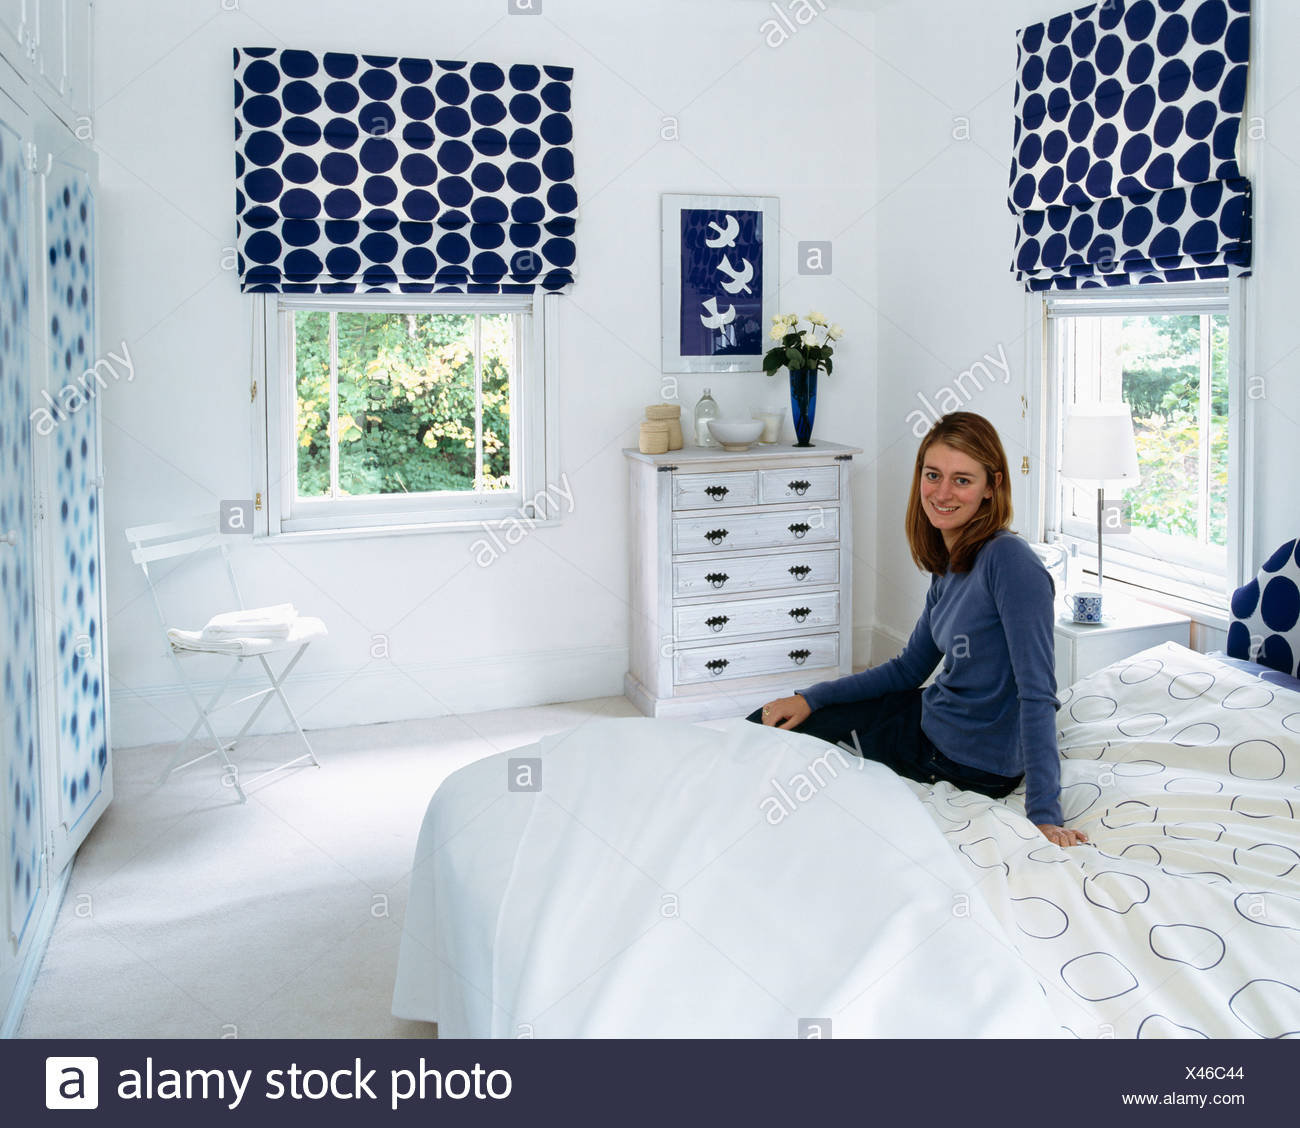 Young Woman Sitting On Bed In White Bedroom With Blue Spotted Blinds On  Windows